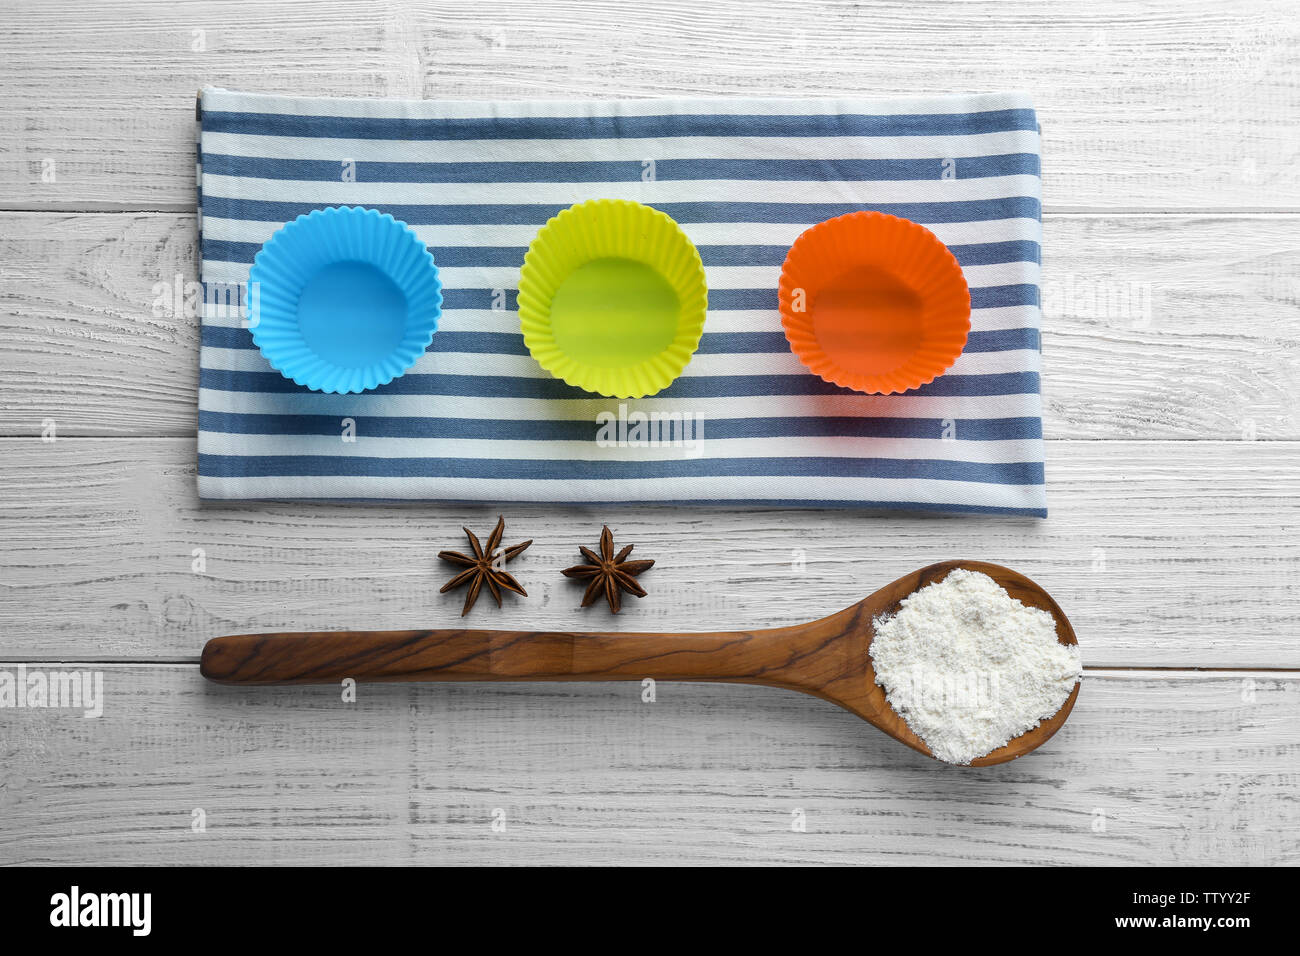 Kitchen molds for baking and spoon with flour on wooden background - Stock Image